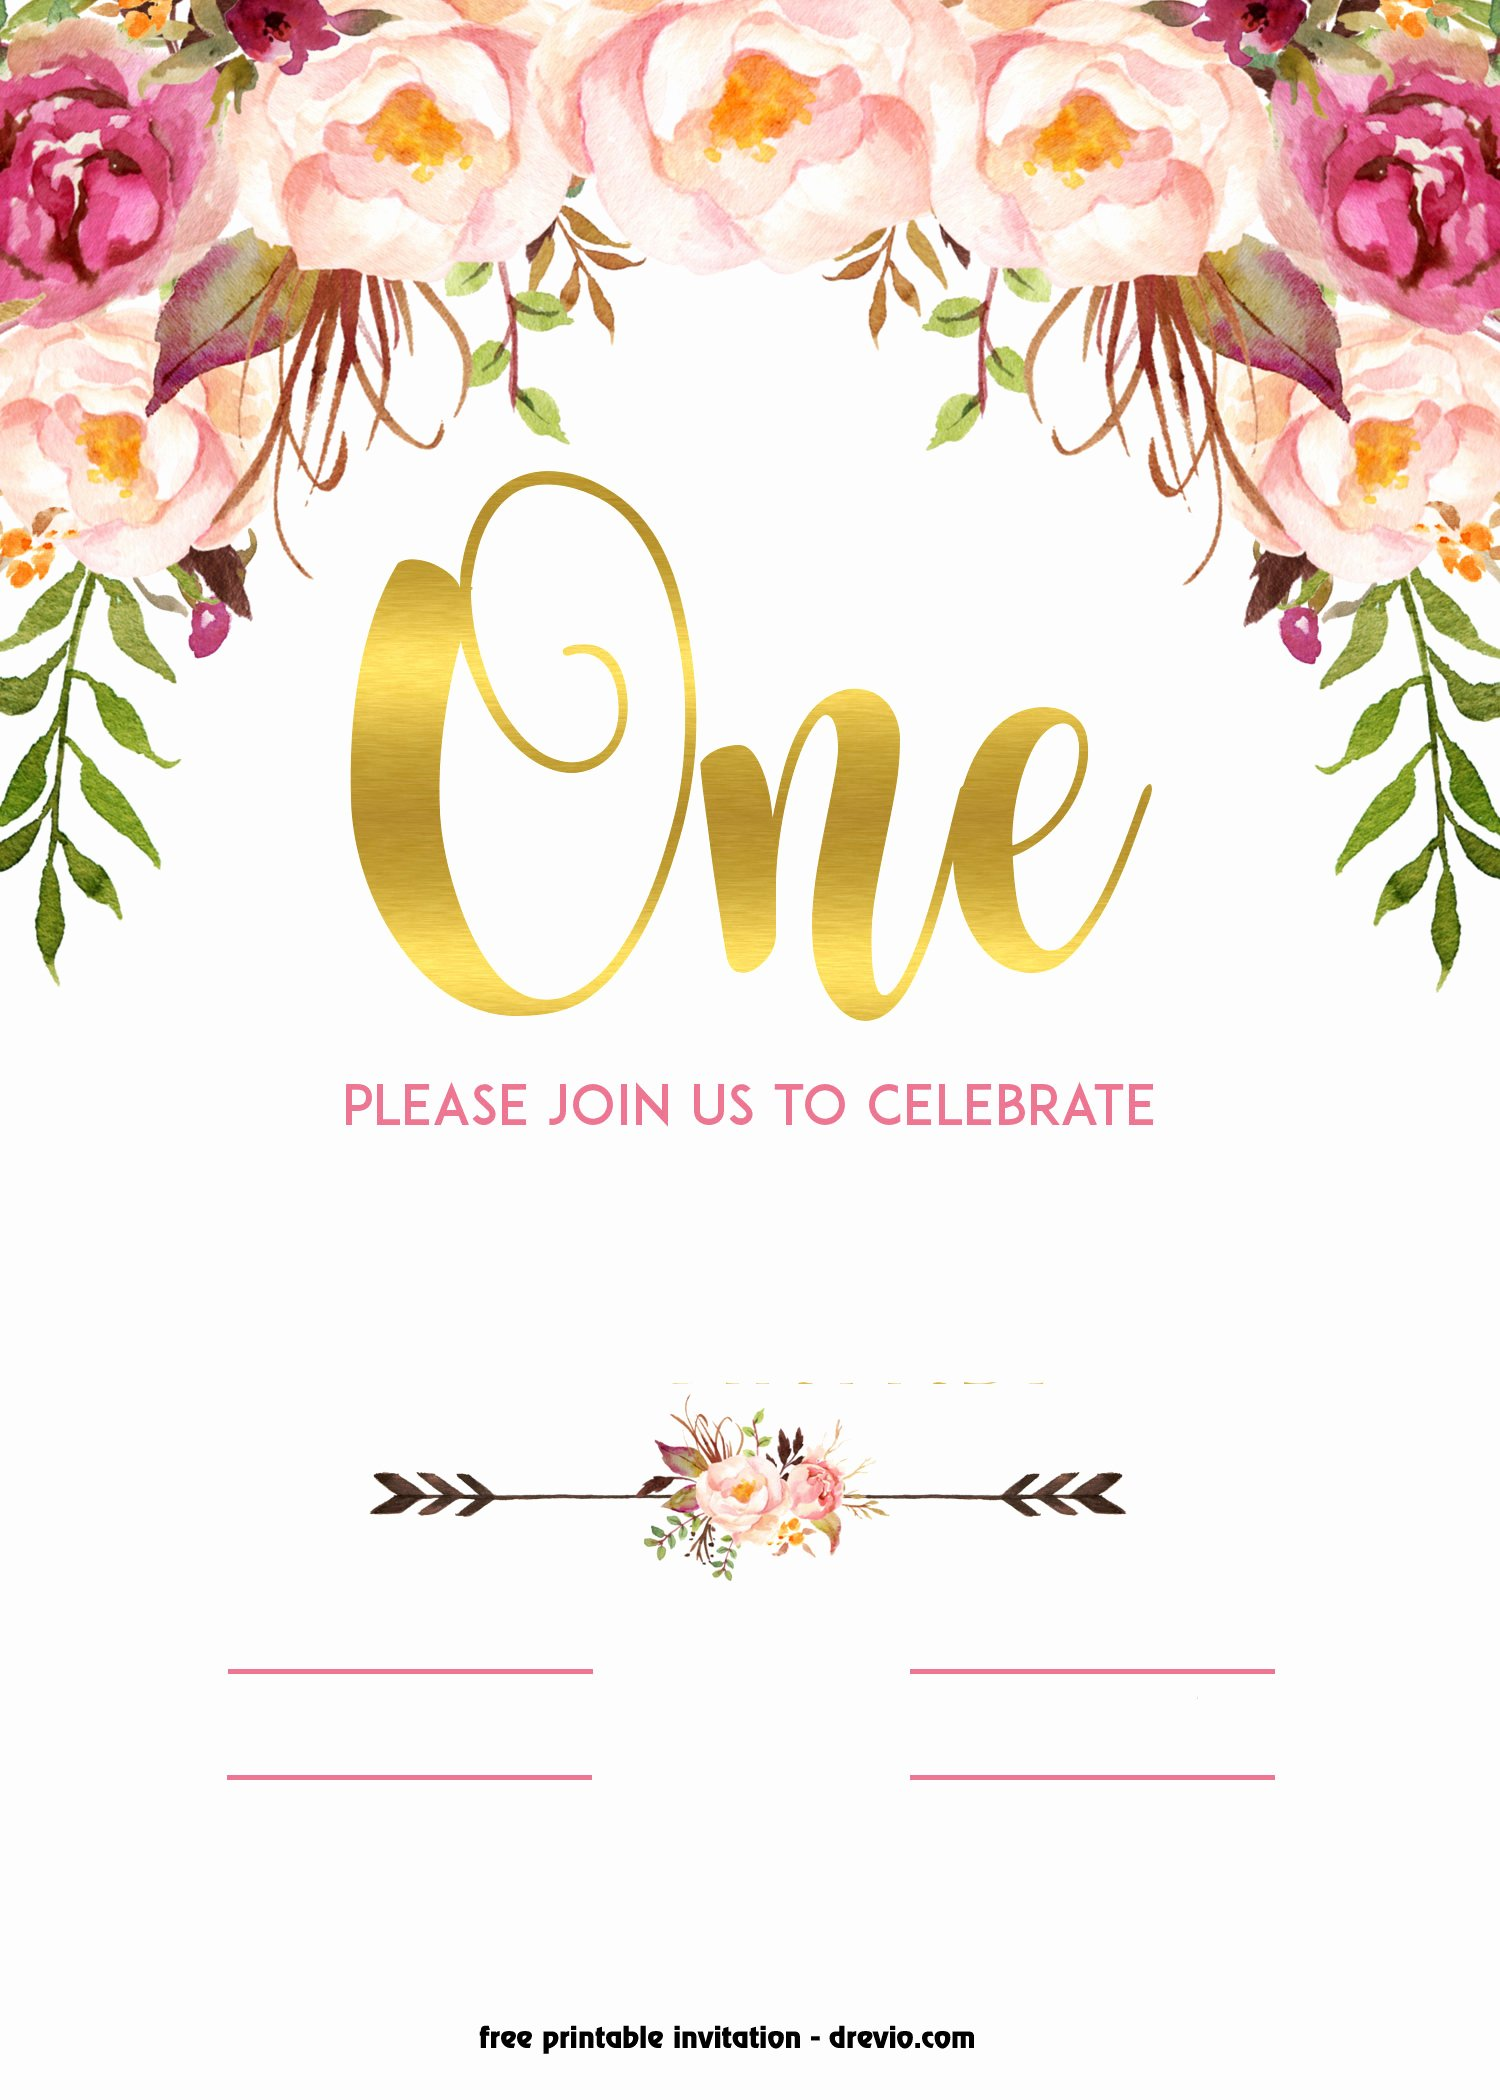 Free Printable Birthday Invitation Templates Beautiful Free Printable 1st Birthday Invitation – Vintage Style